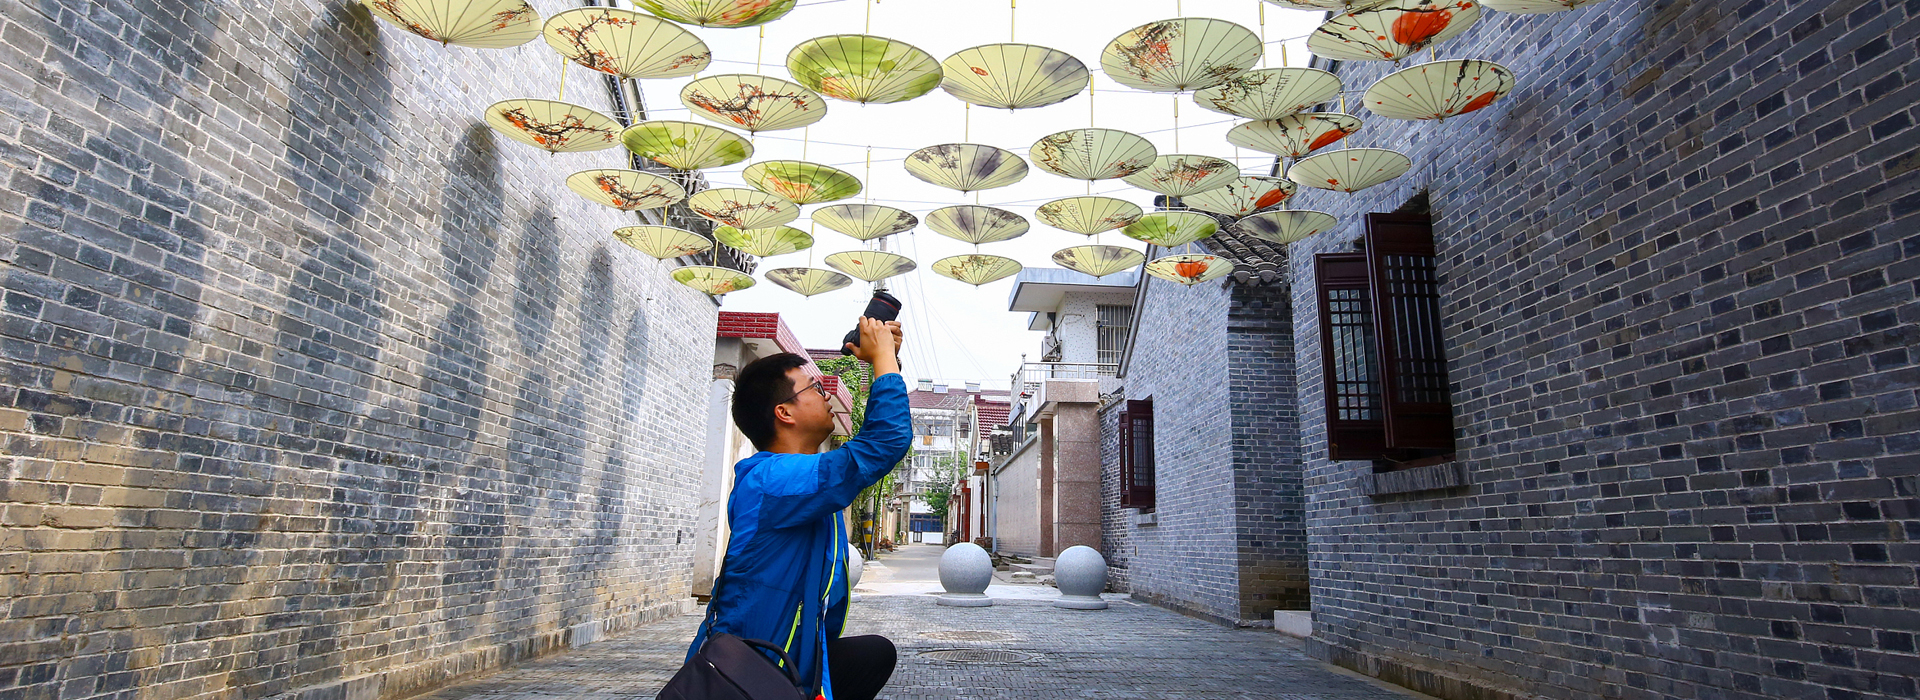 Nantong ancient street included in provincial development plan